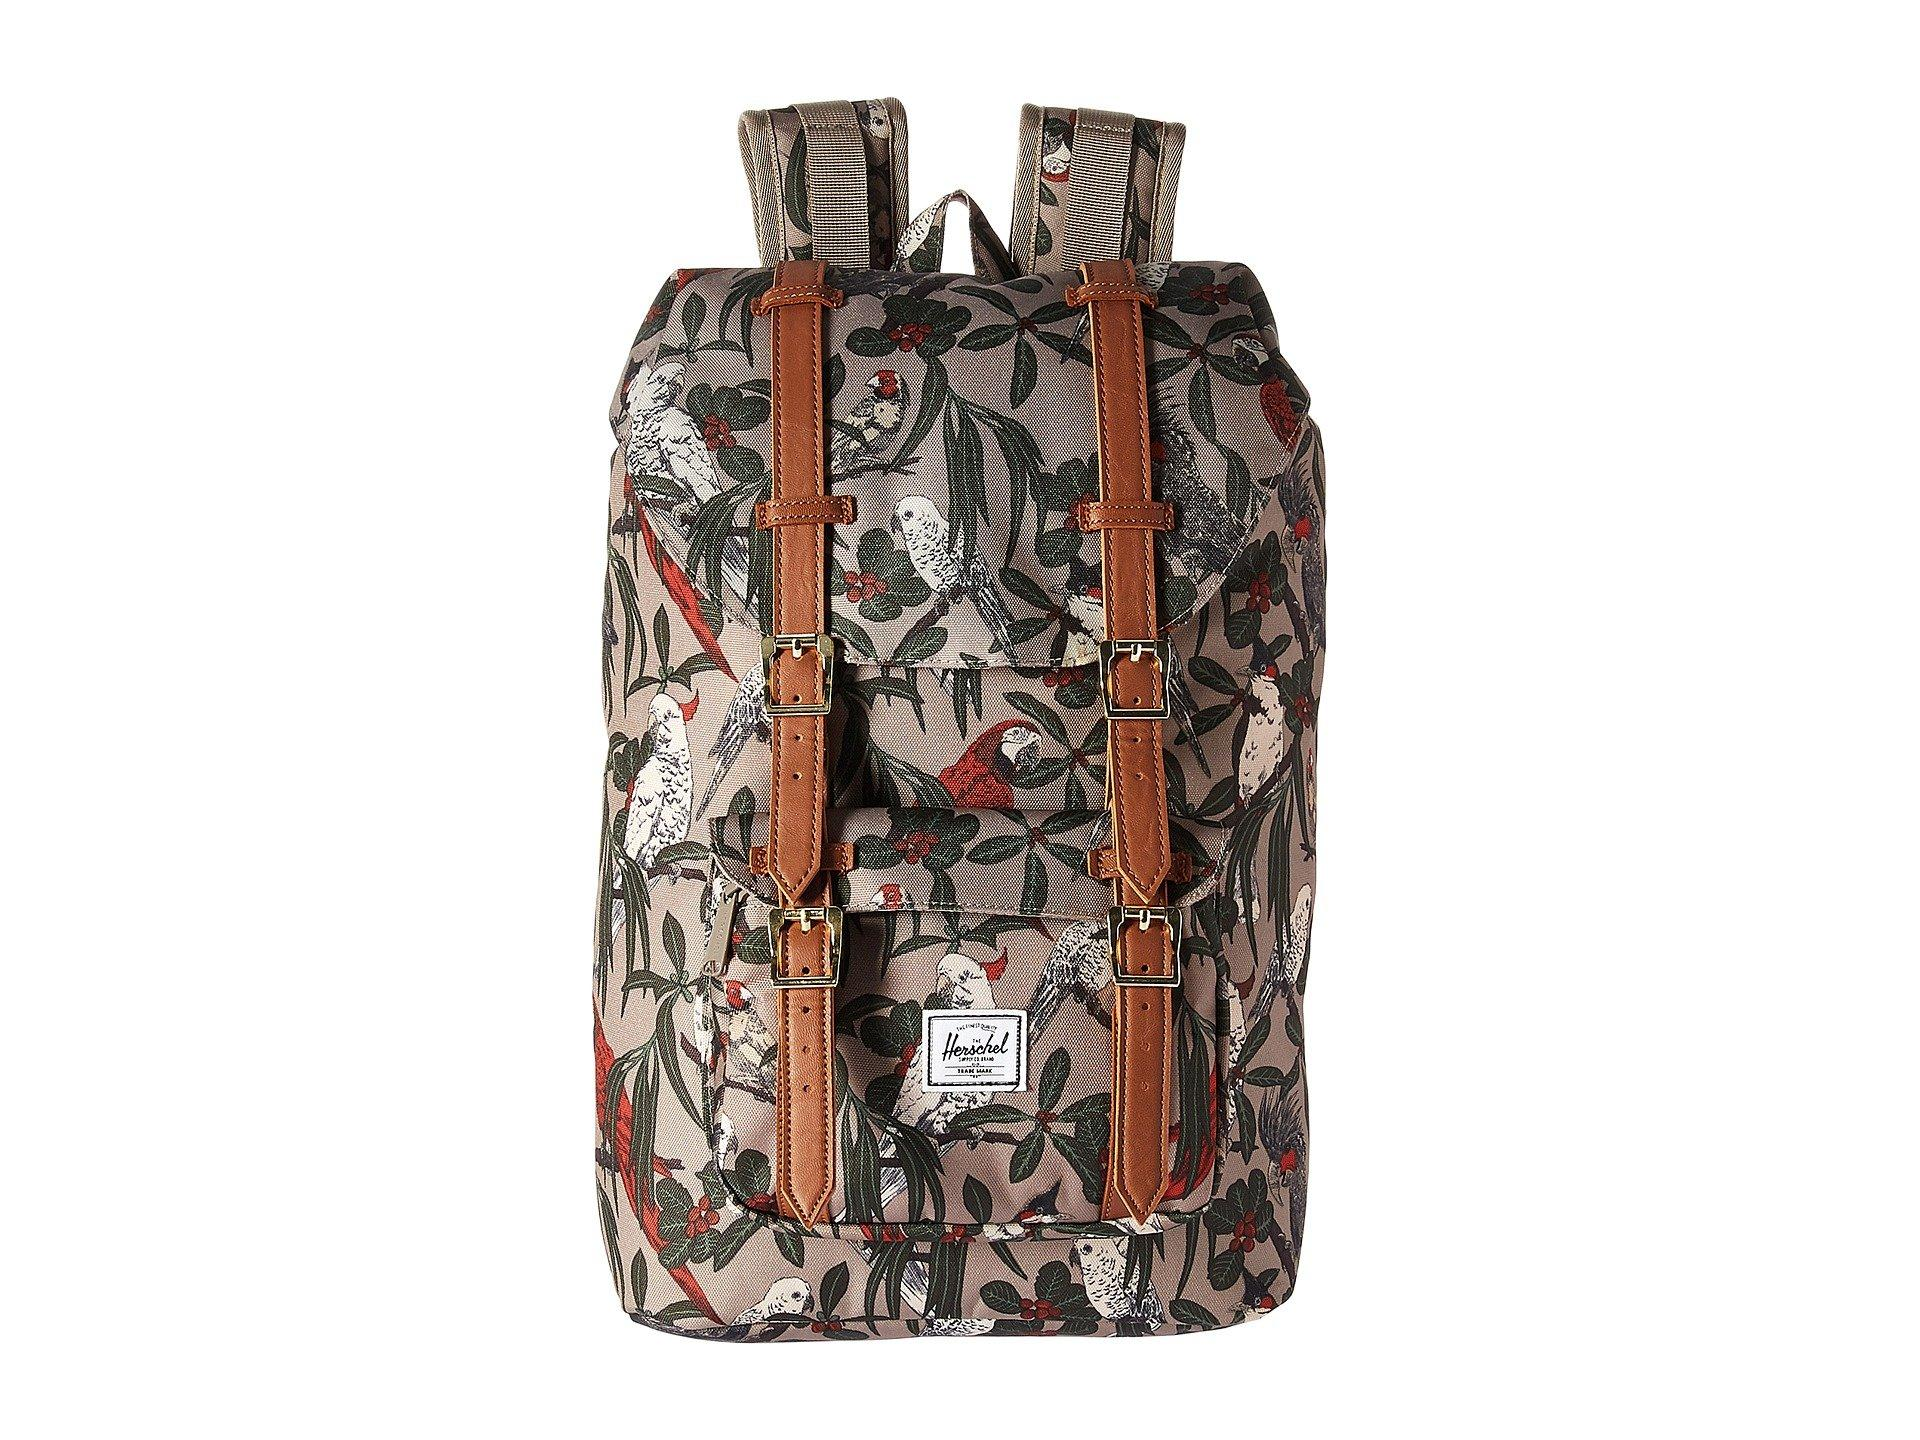 49dca8d25 Herschel Supply Co. Little America Mid-Volume In Brindle Parlour/Tan  Synthetic Leather